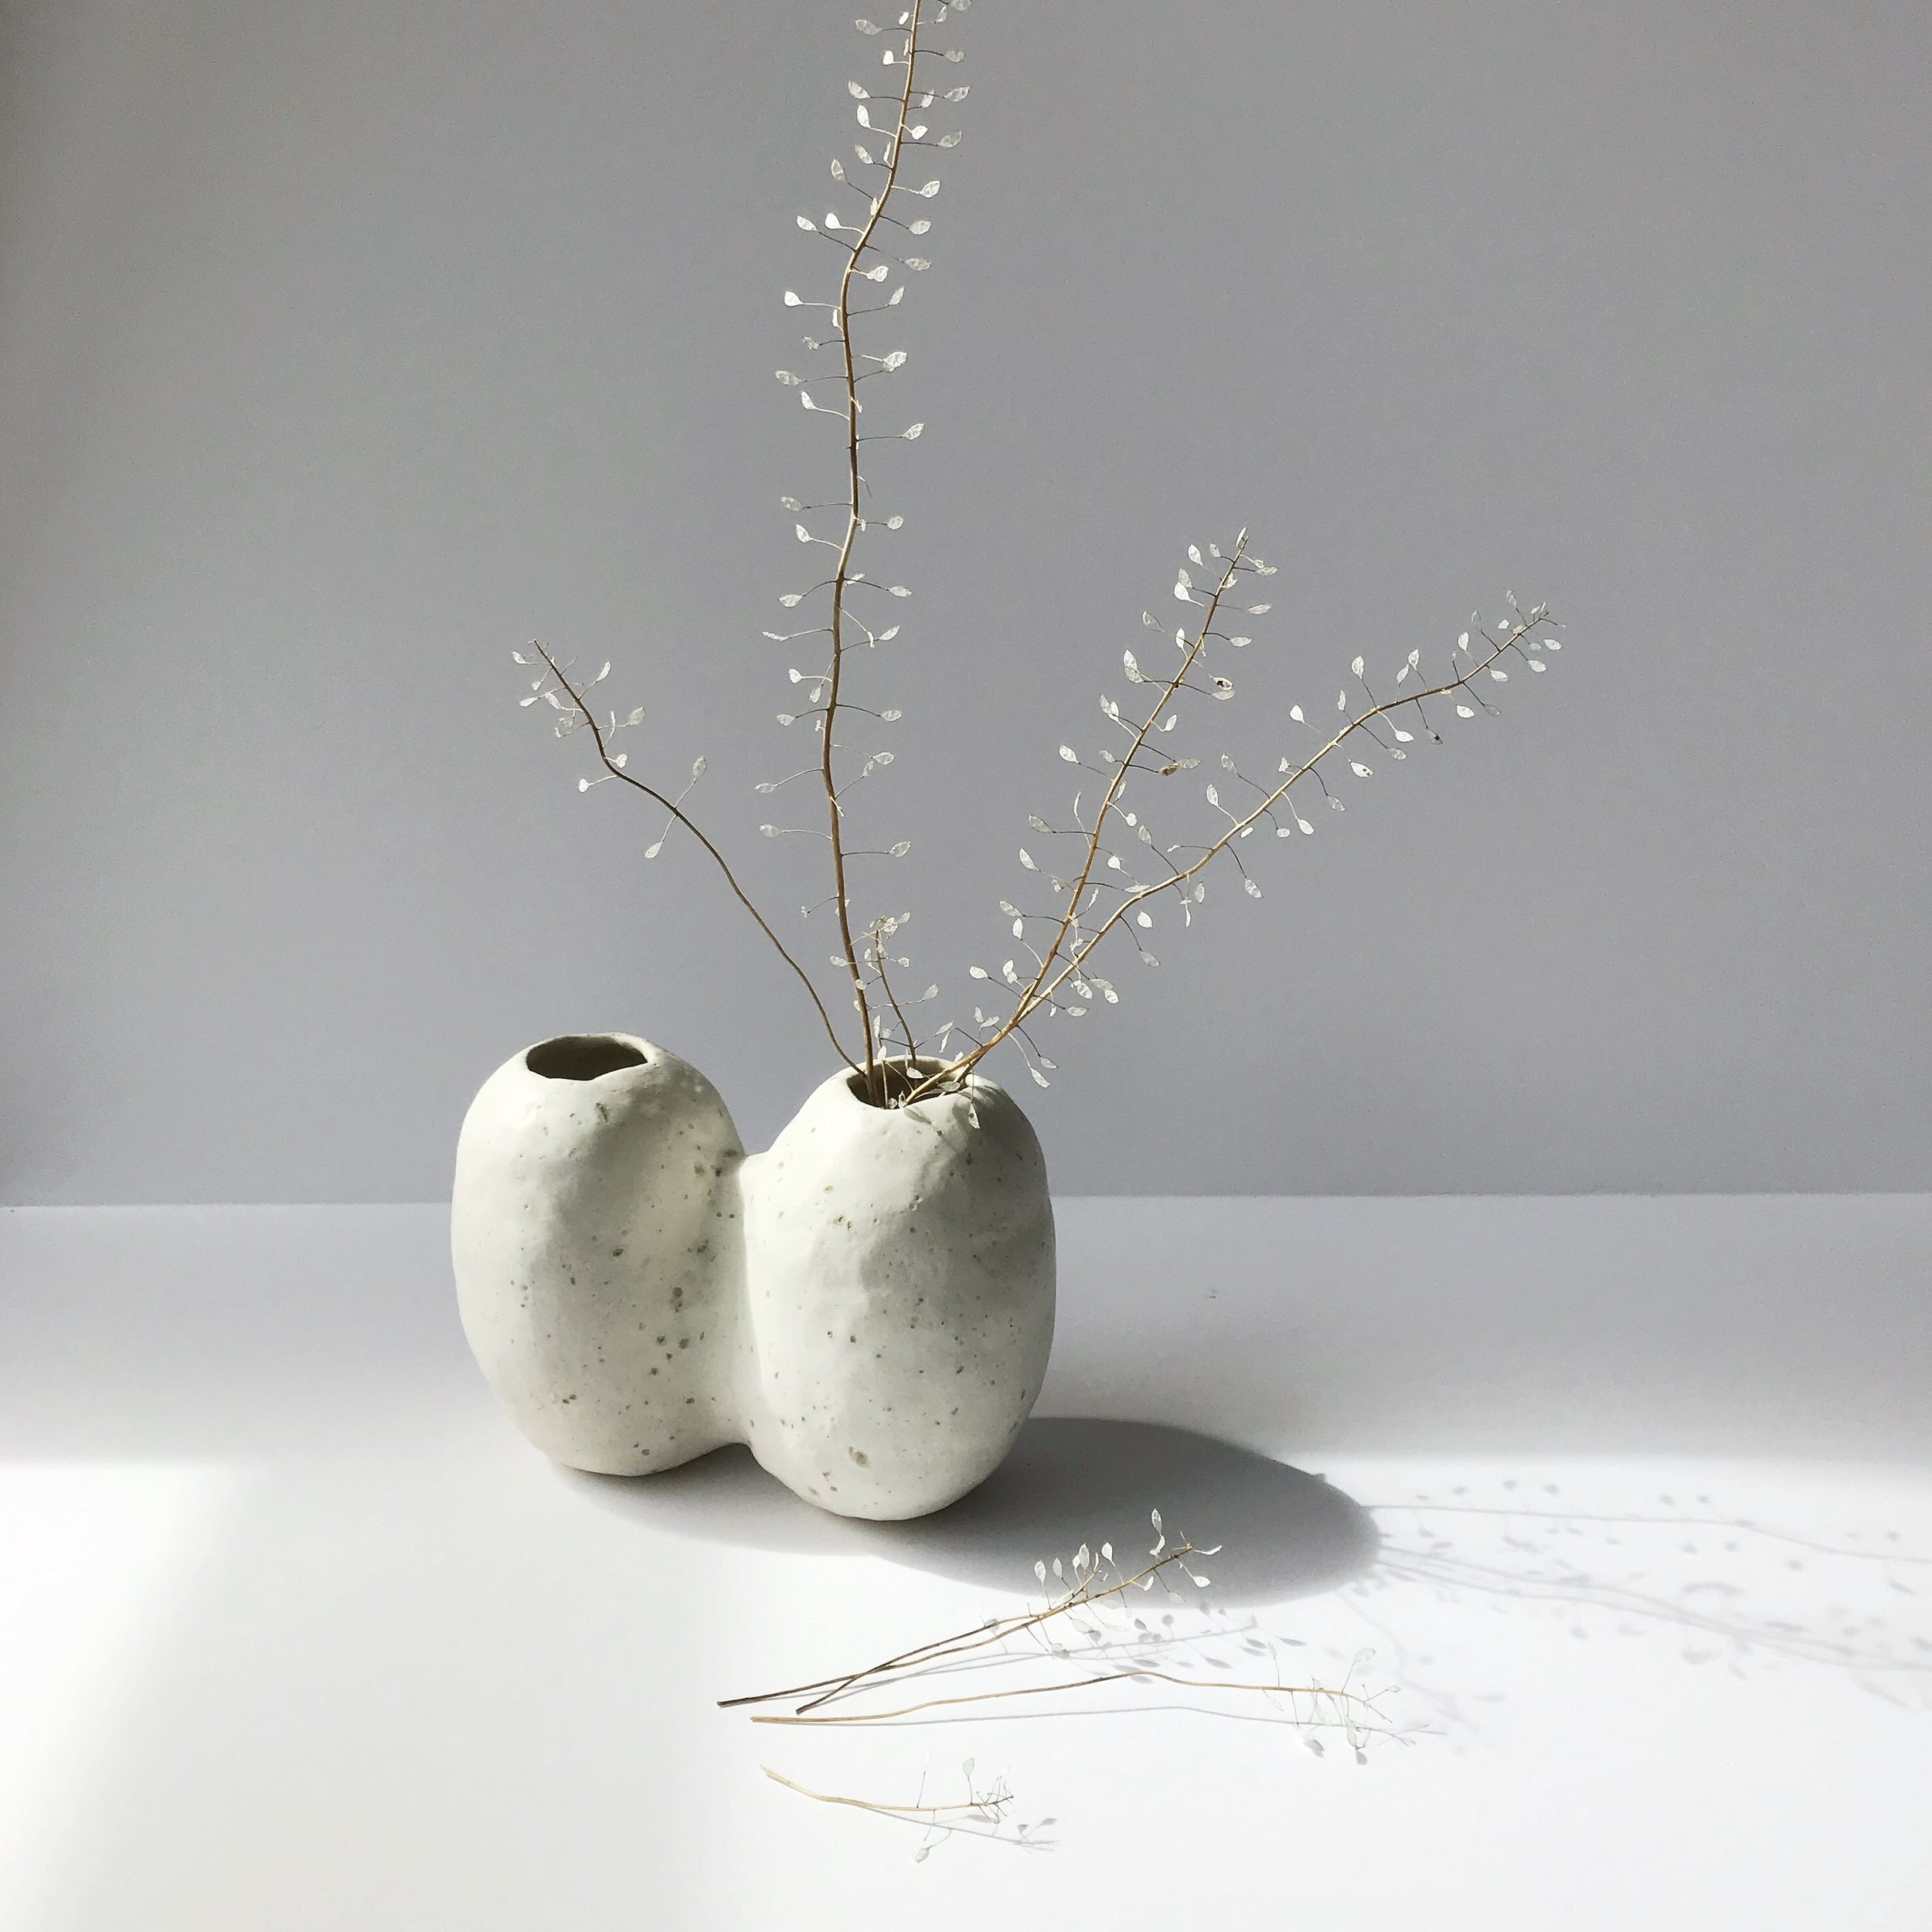 """TWIN NIWAKI VASE  hand build stoneware bud vase  measures approx. approx. 6.5"""" across x 3"""" wide x 5"""" tall $60 Wholesale 